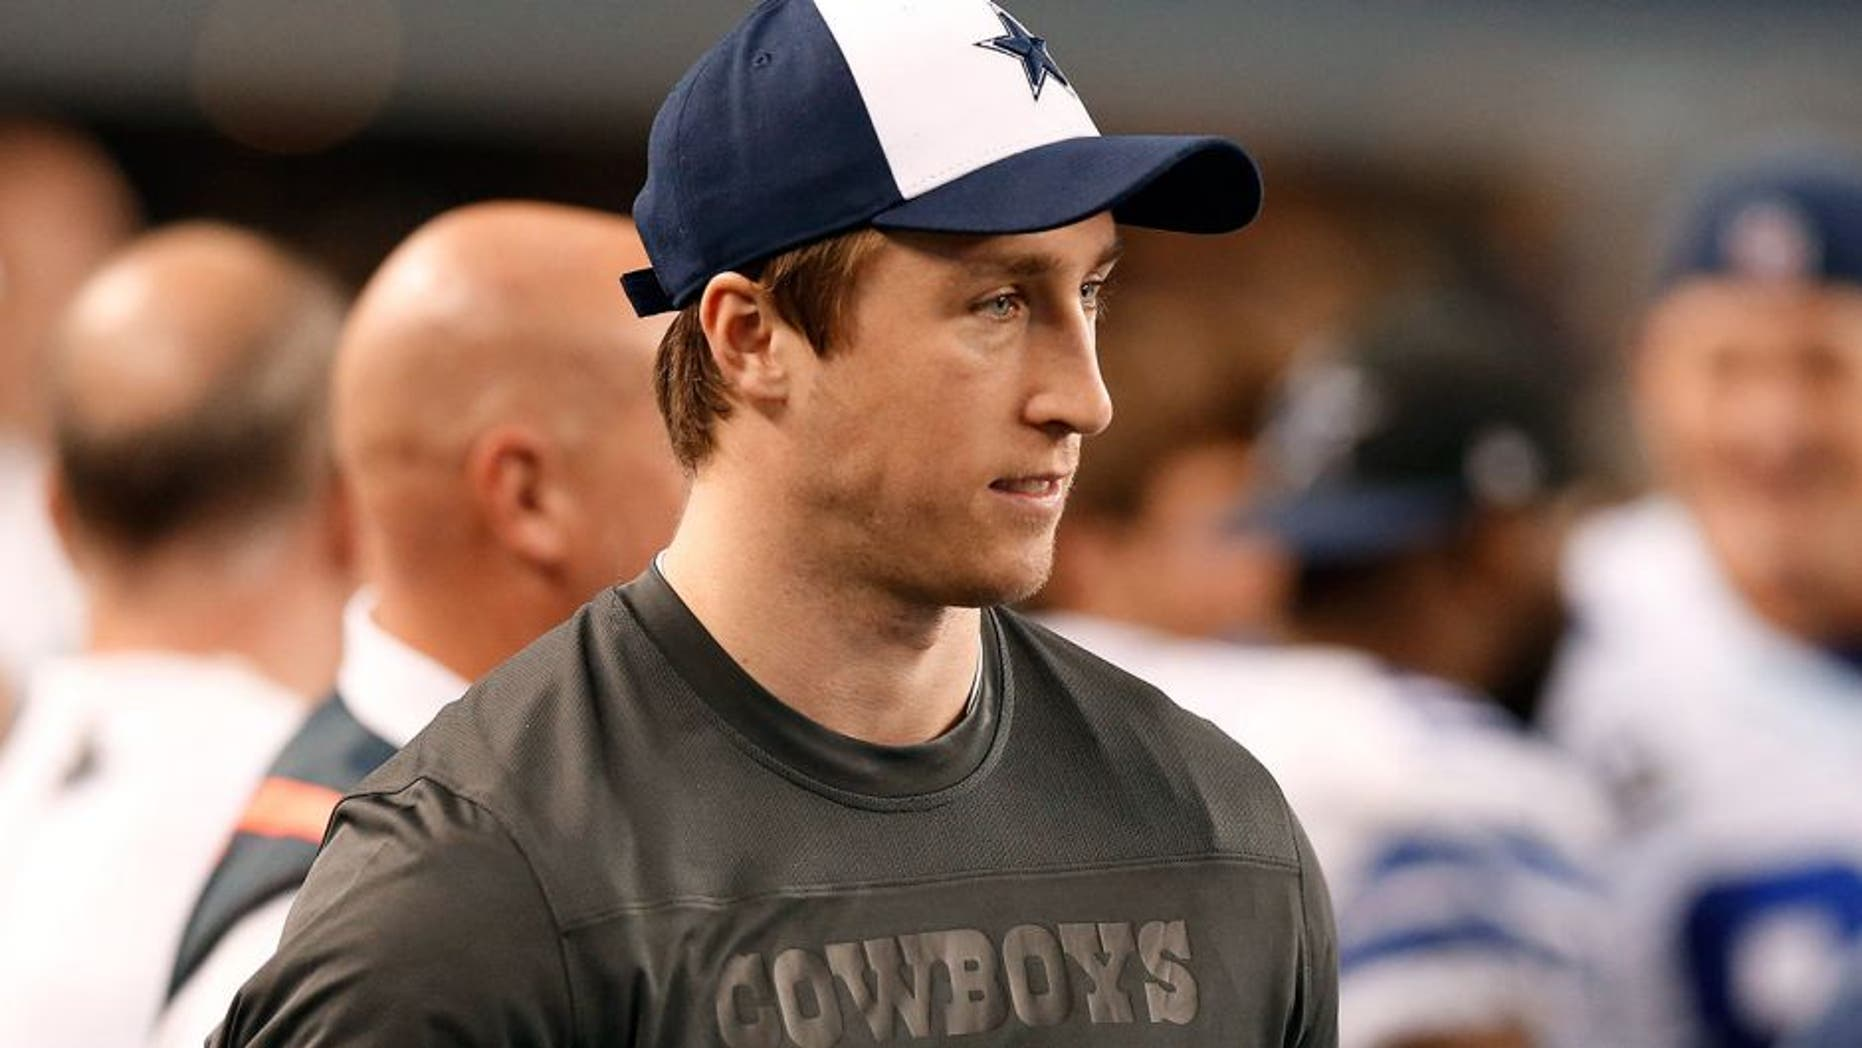 Dec 21, 2014; Arlington, TX, USA; Dallas Cowboys injured linebacker Sean Lee on the sidelines during the fourth quarter against the Indianapolis Colts at AT&T Stadium. Mandatory Credit: Matthew Emmons-USA TODAY Sports